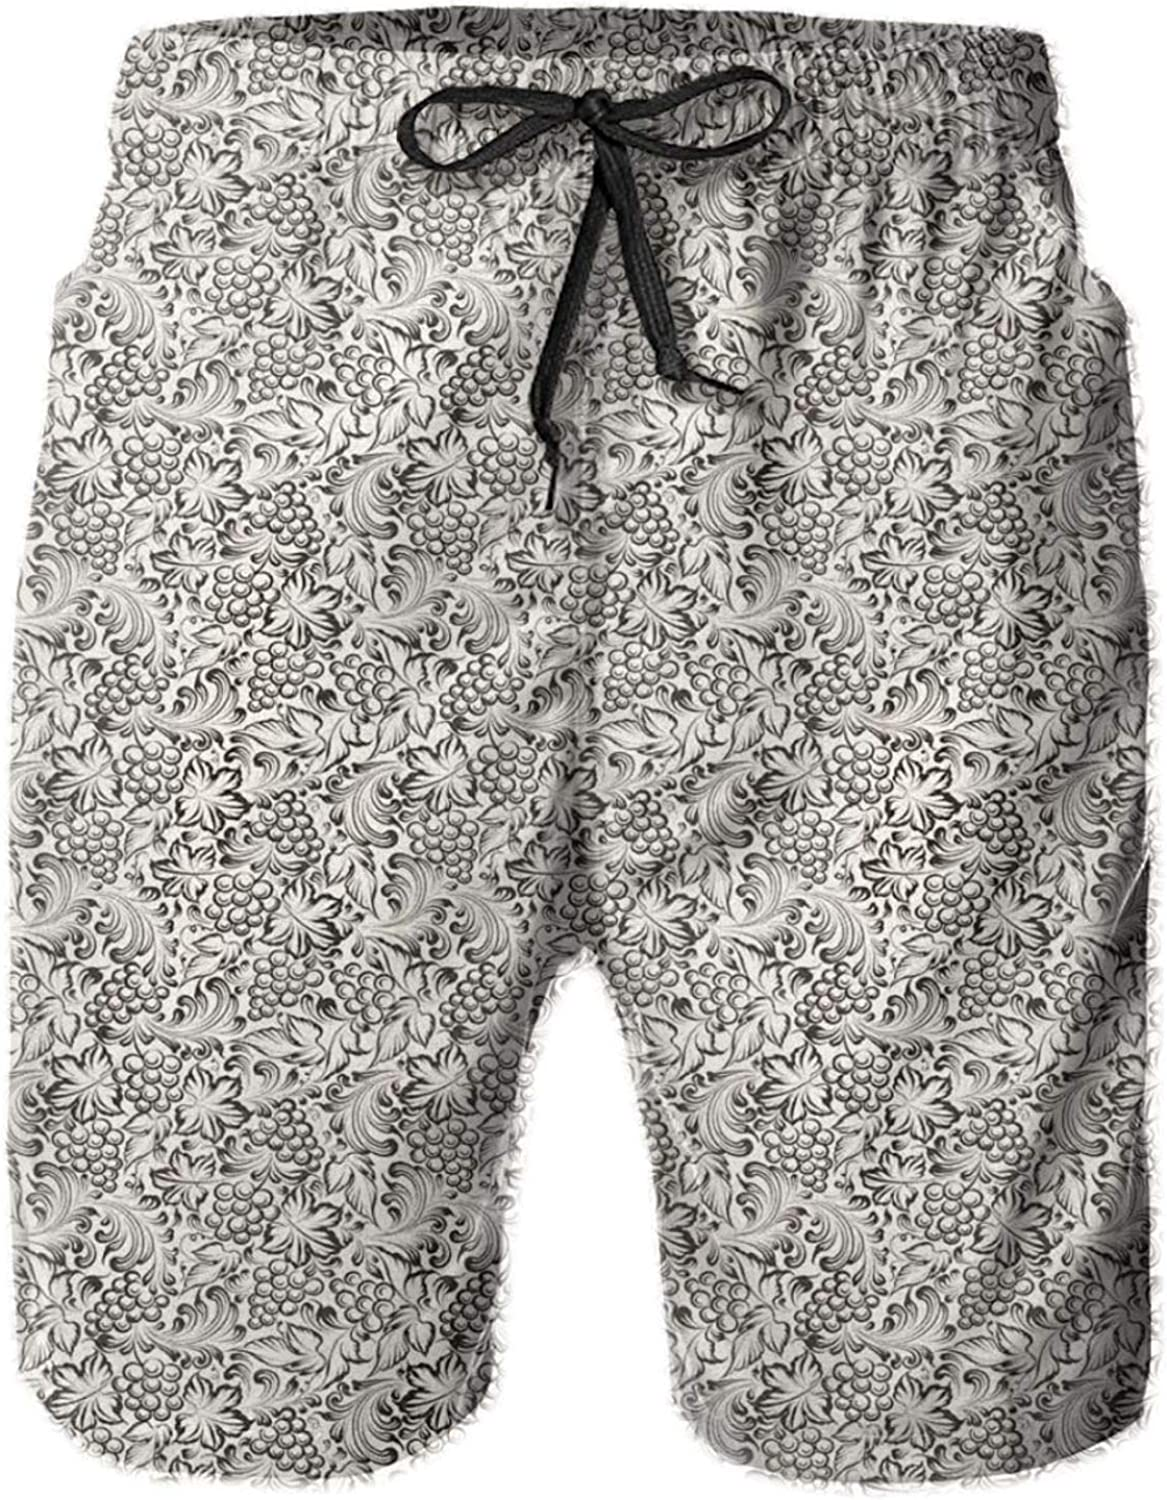 Artistic Hand-Drawn Grapevine Pattern with Bulky Leaves Digital Image Mens Swim Trucks Shorts with Mesh Lining,M